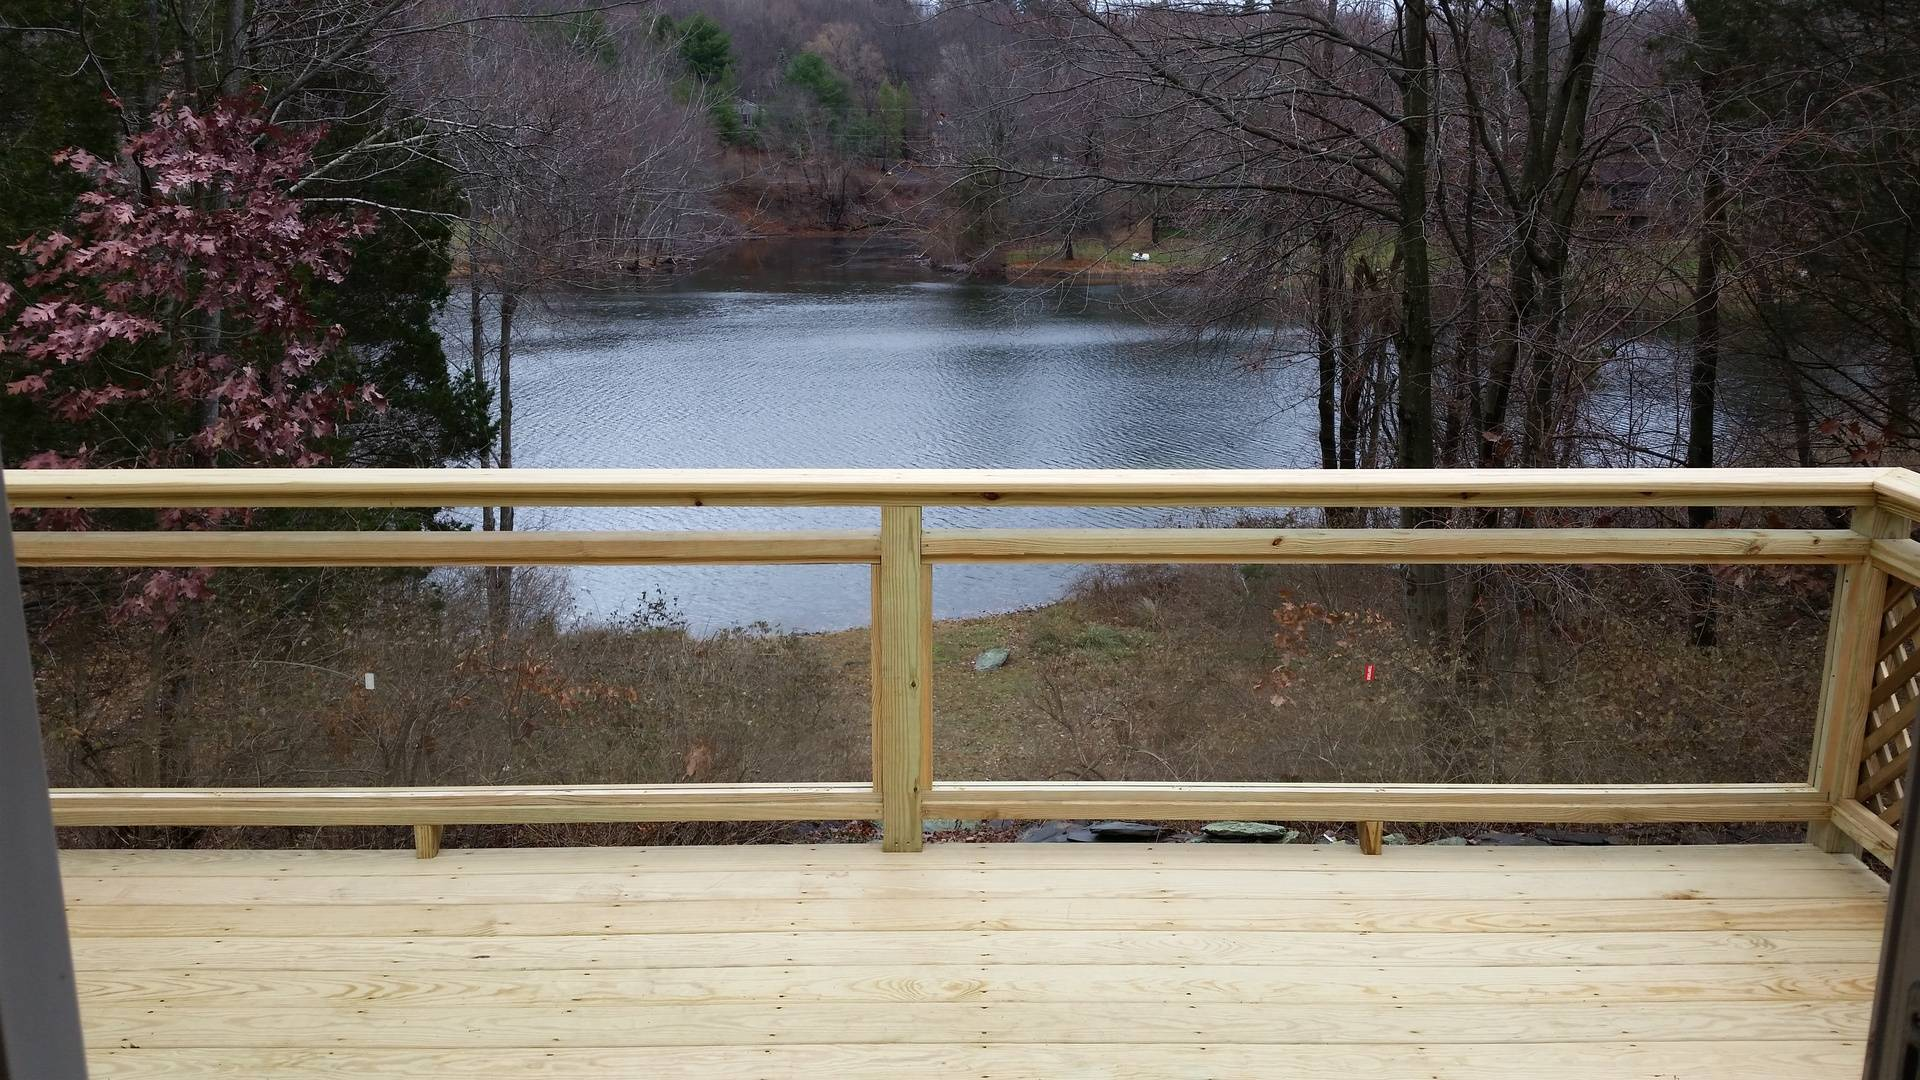 10 X 15 Pressure Treated Deck With Glass Rails 3